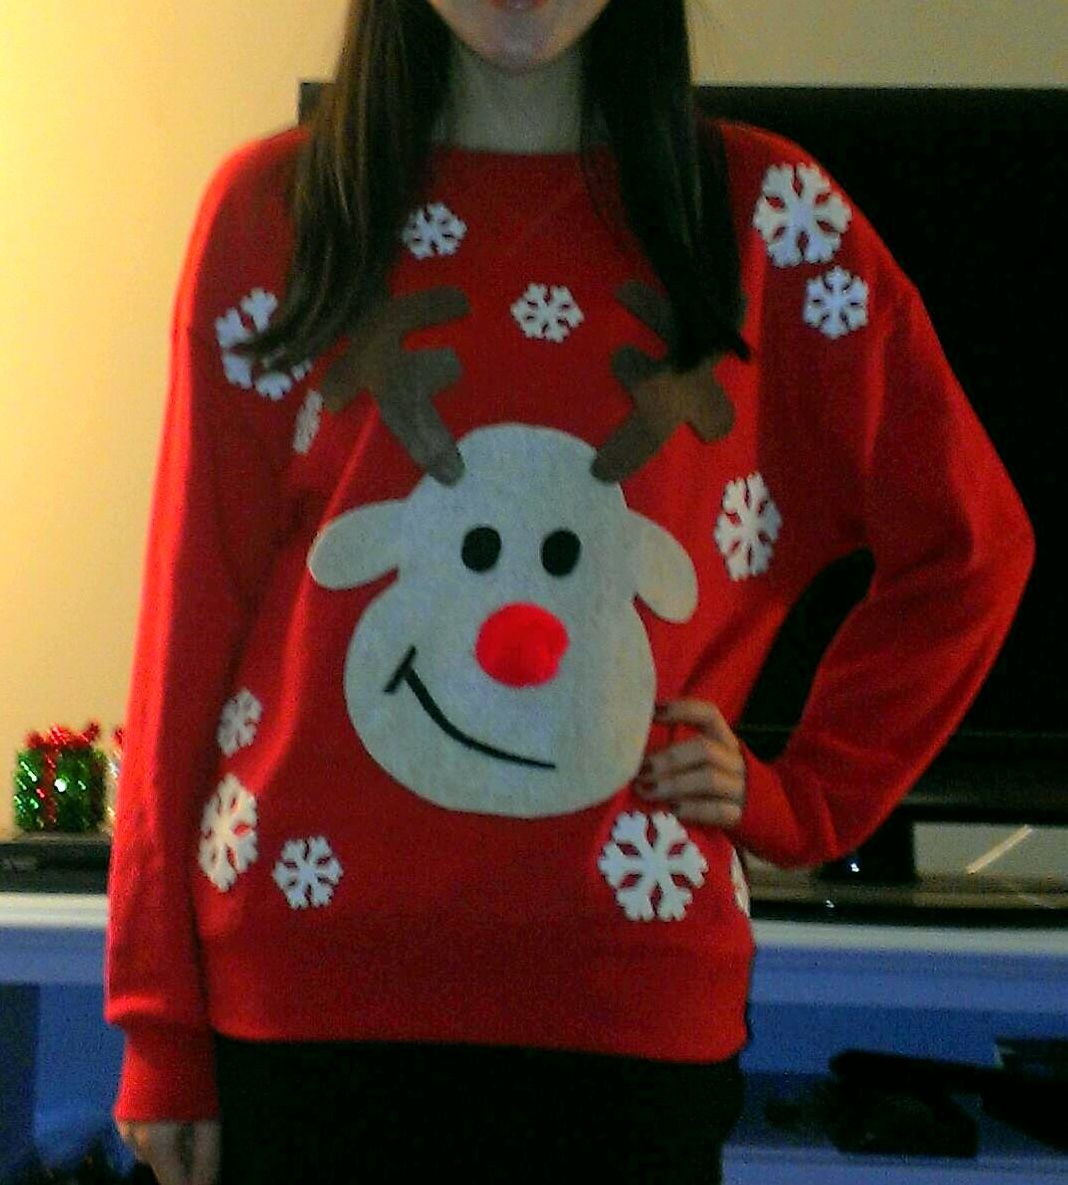 My Diy Reindeer Snowflakes Ugly Christmas Sweater Made With Felt